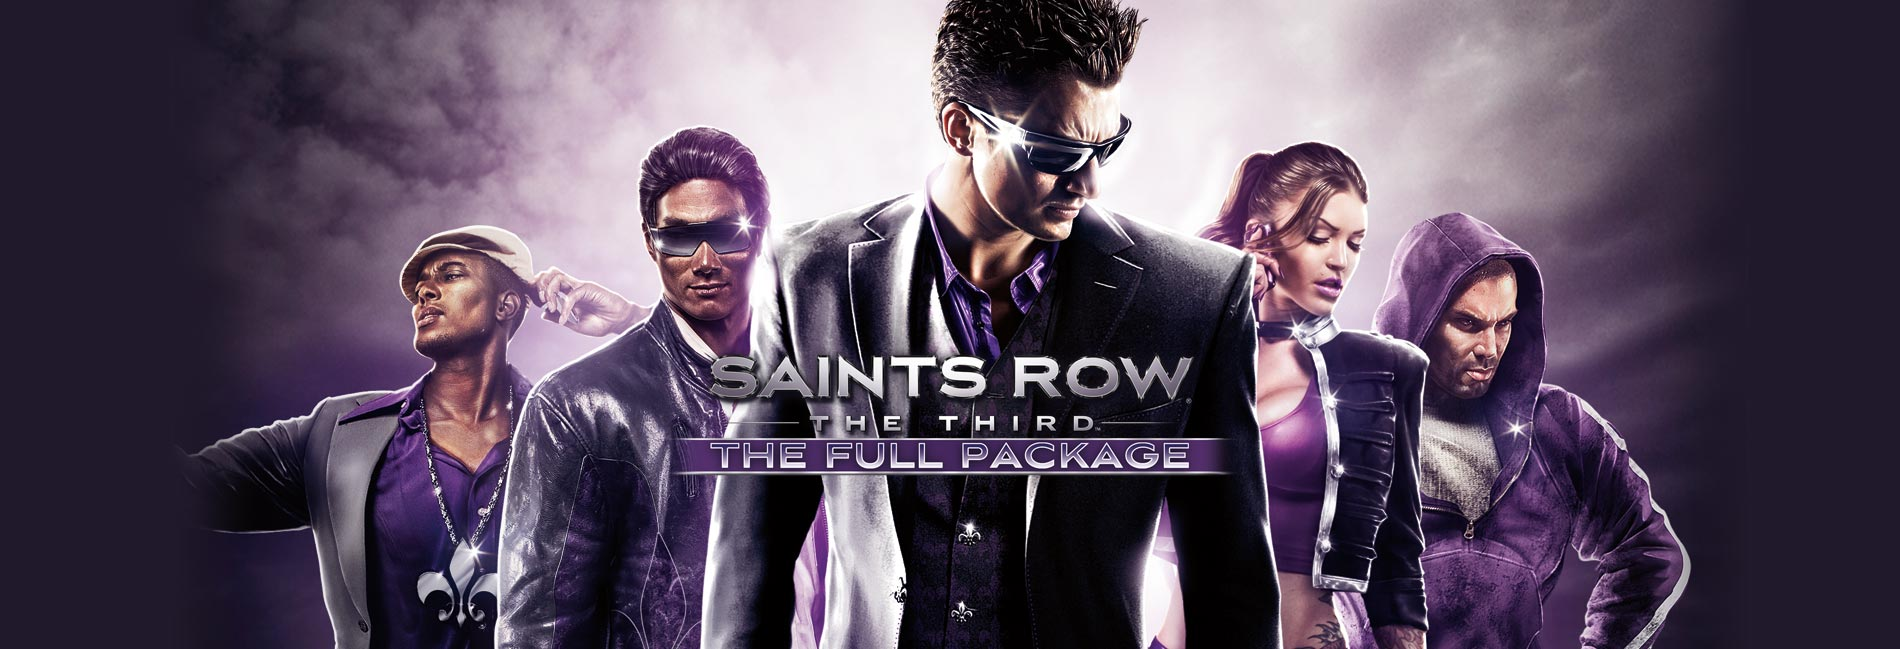 saints row 3rd